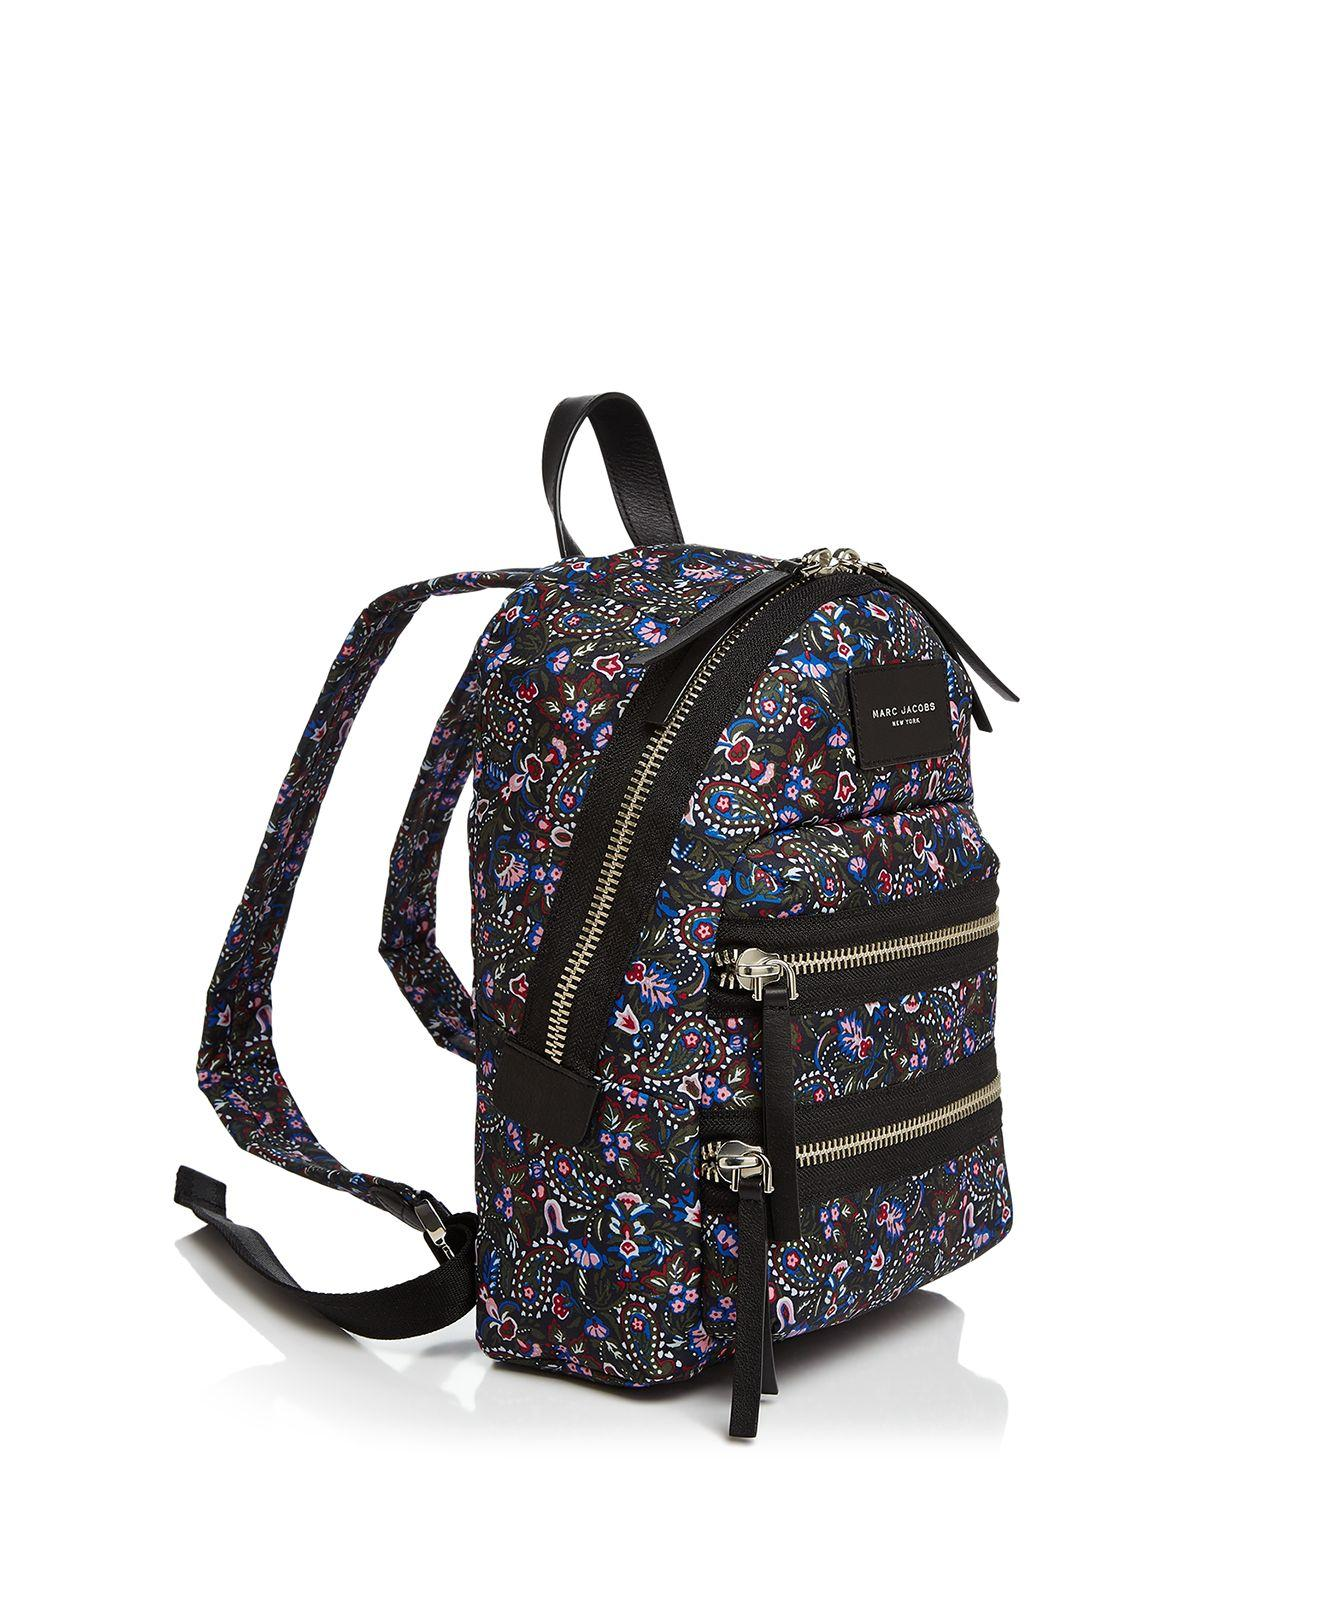 Marc Jacobs Synthetic Biker Floral Mini Nylon Backpack in Black